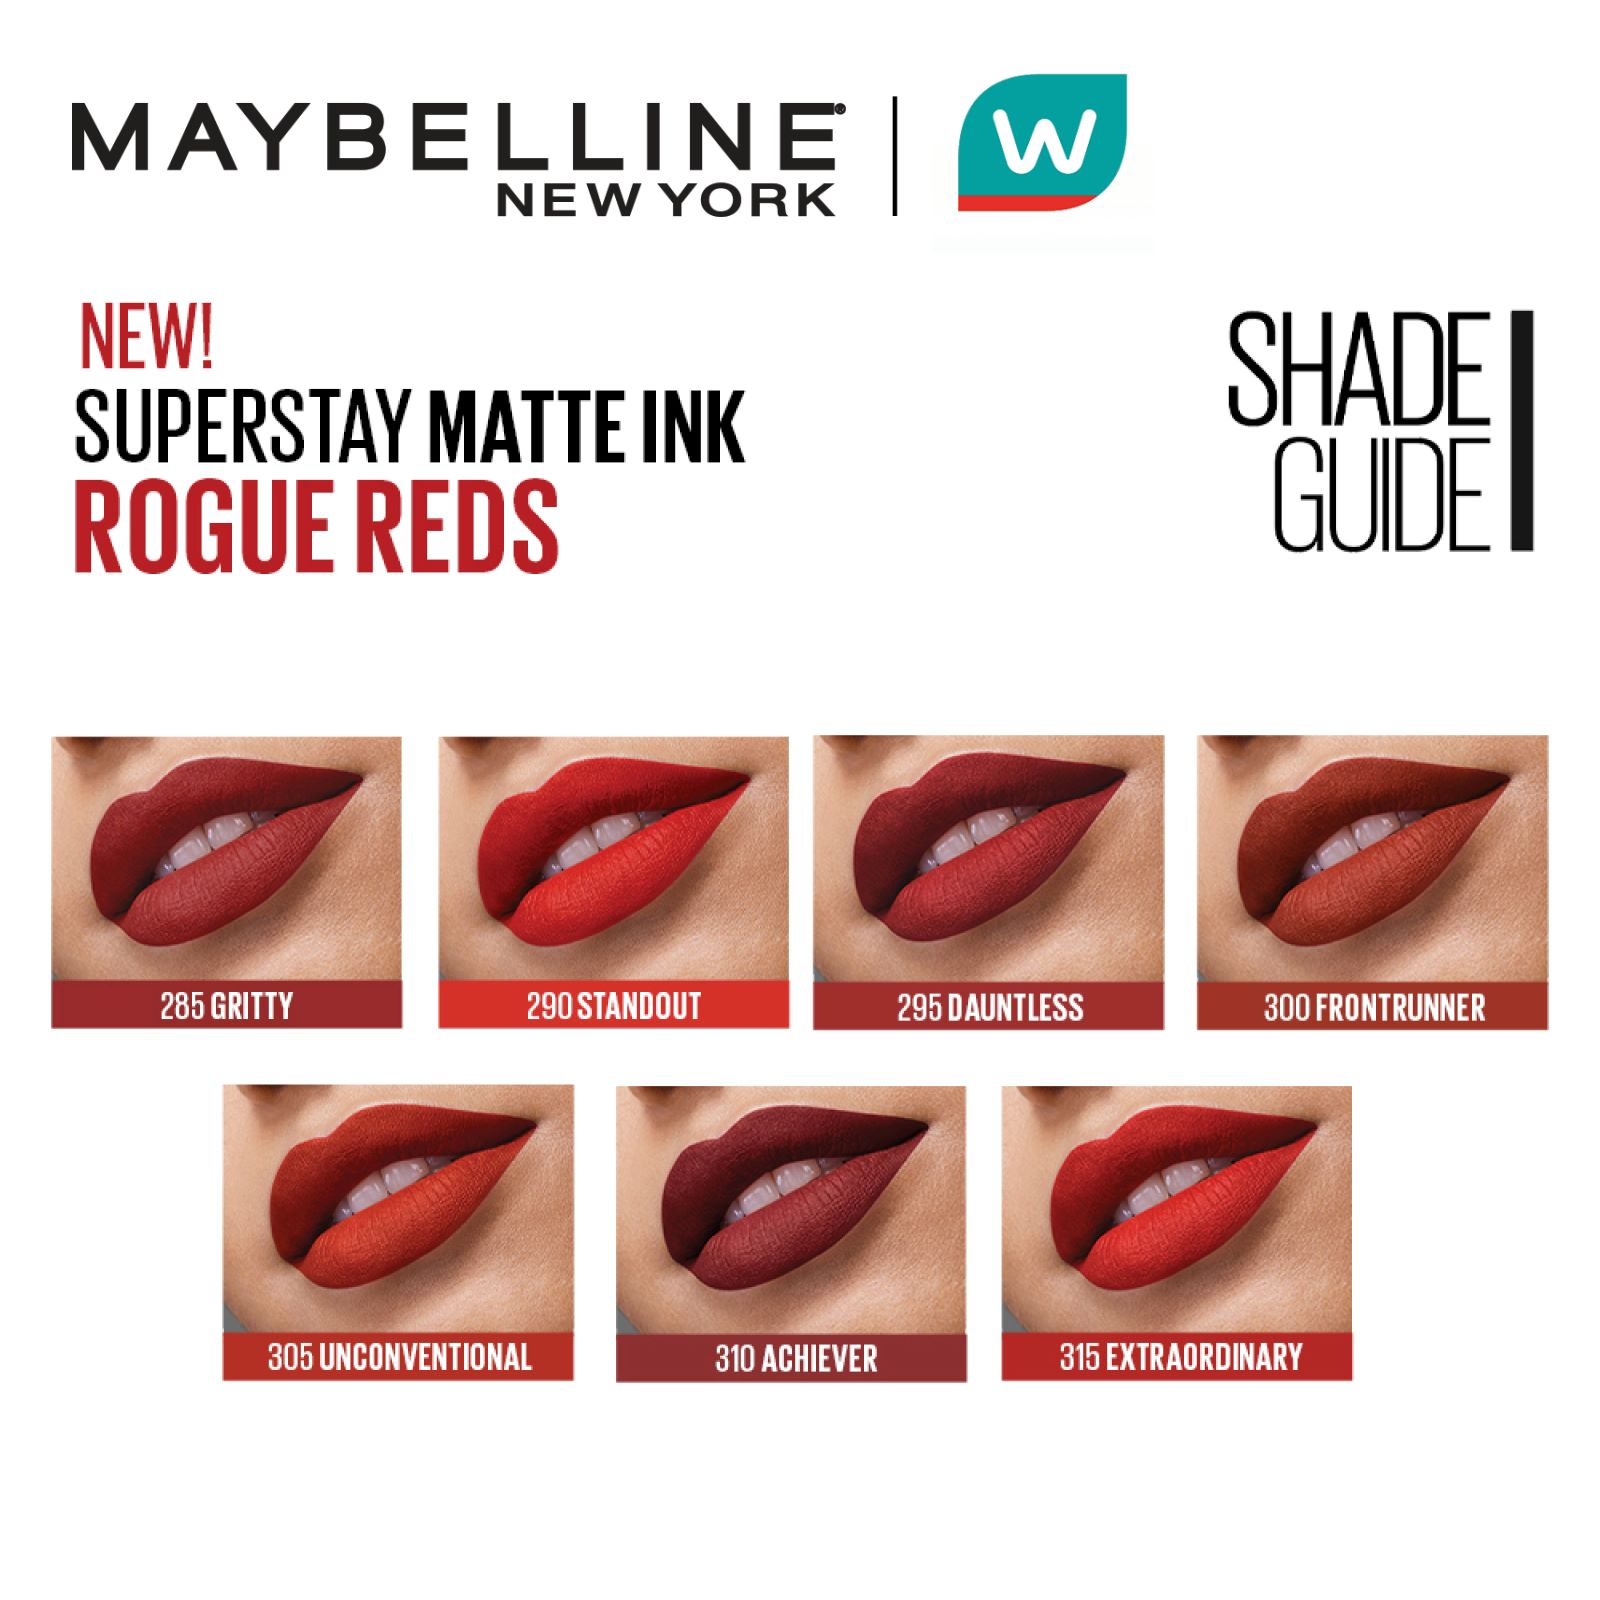 MAYBELLINESuperstay Matte Ink 295 Dauntless [16HR Waterproof] by 5ml,Lipstick , Lip Tint and LiplinersFree Shipping